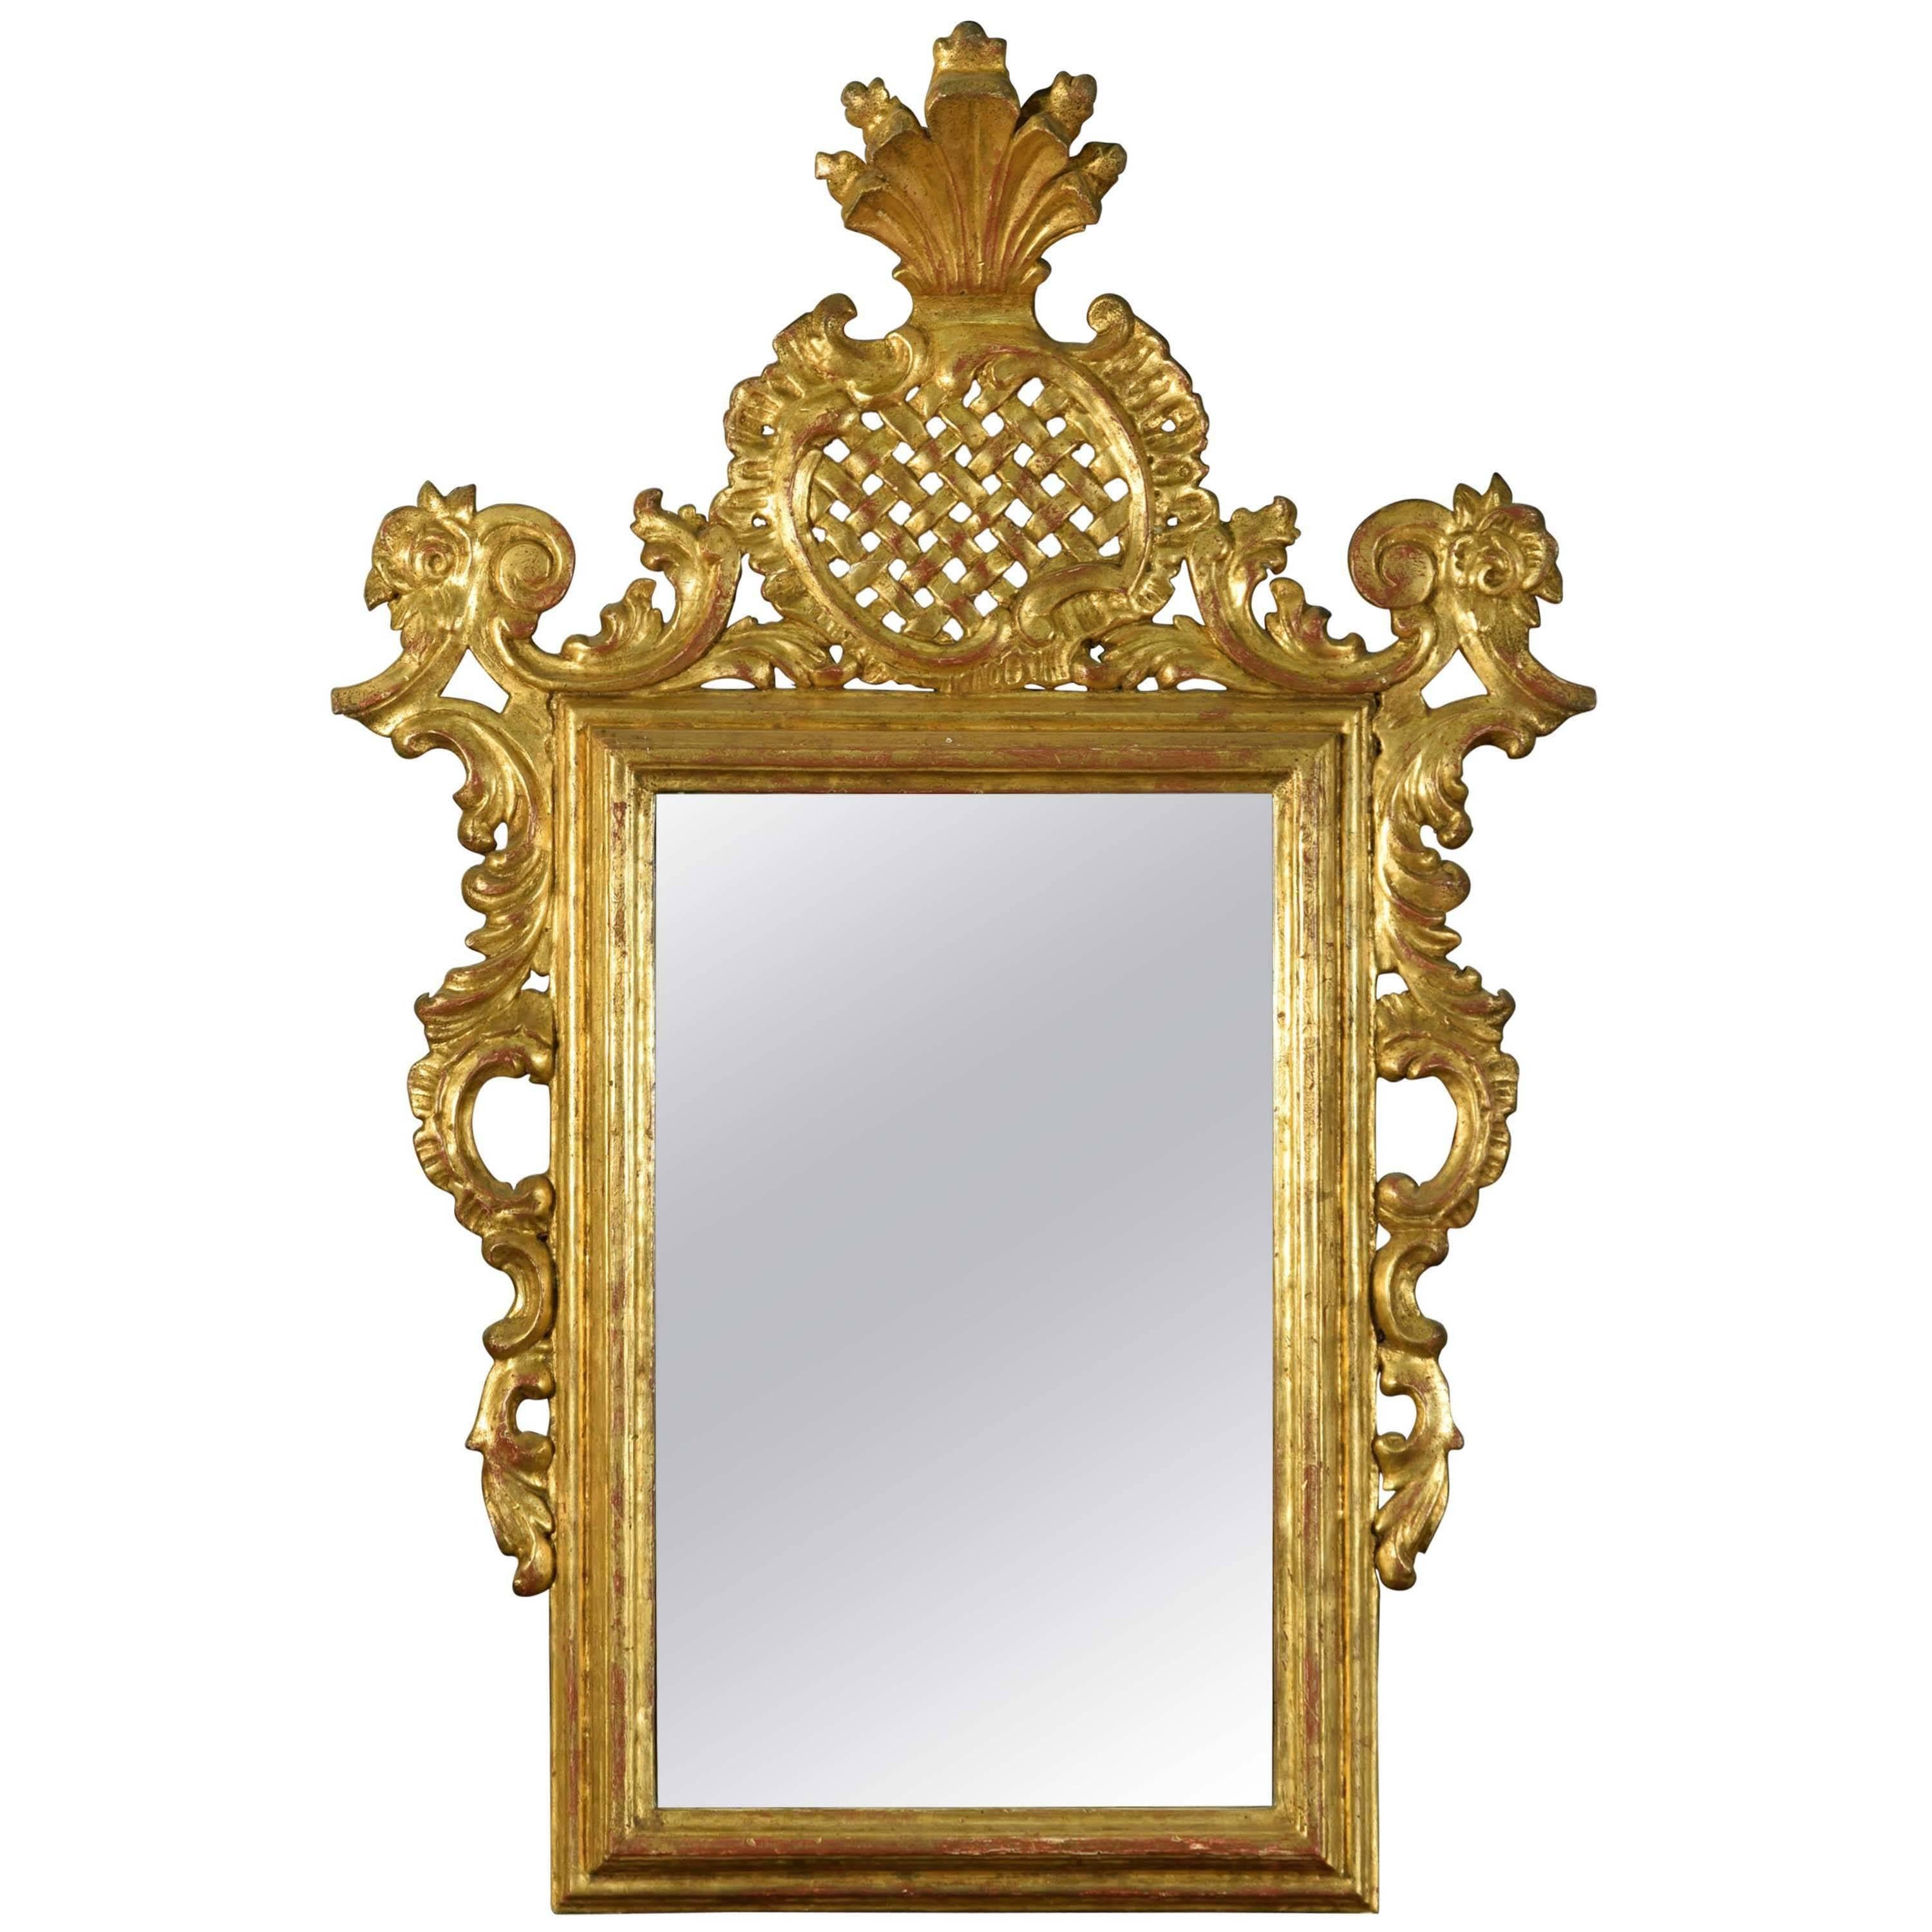 Mirror with Rococo Style Frame, Wood, 20th Century